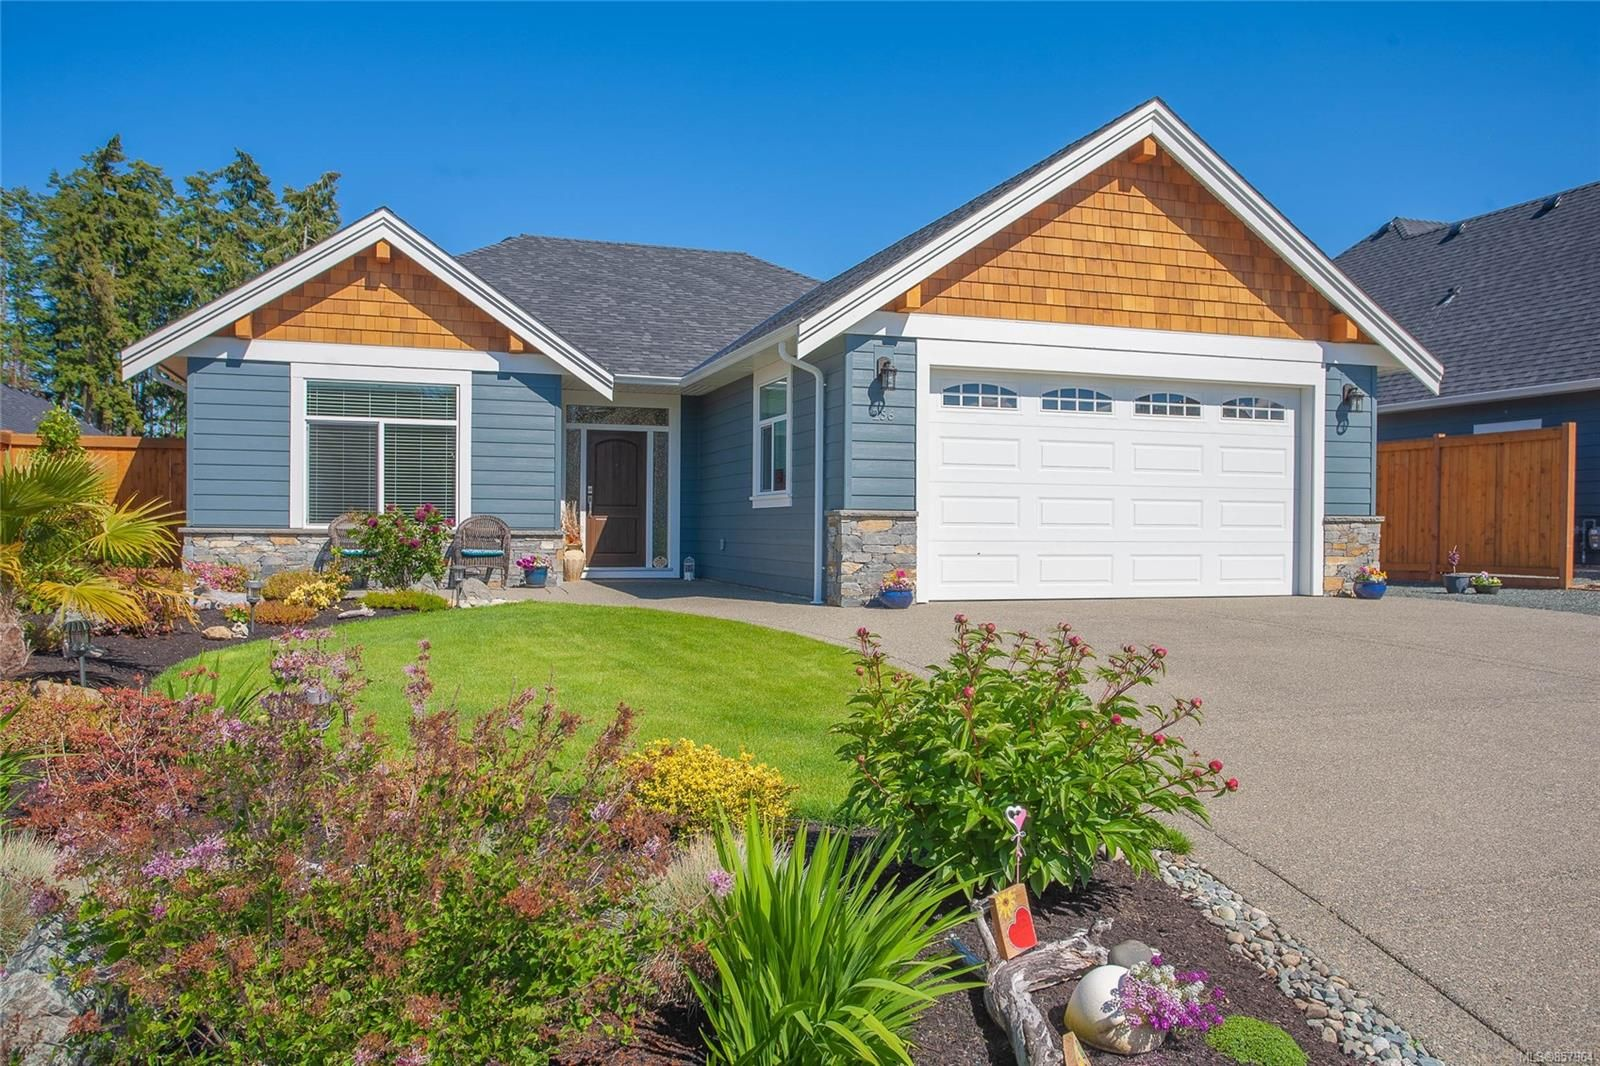 Main Photo: 256 Bramble St in : PQ Parksville House for sale (Parksville/Qualicum)  : MLS®# 857964